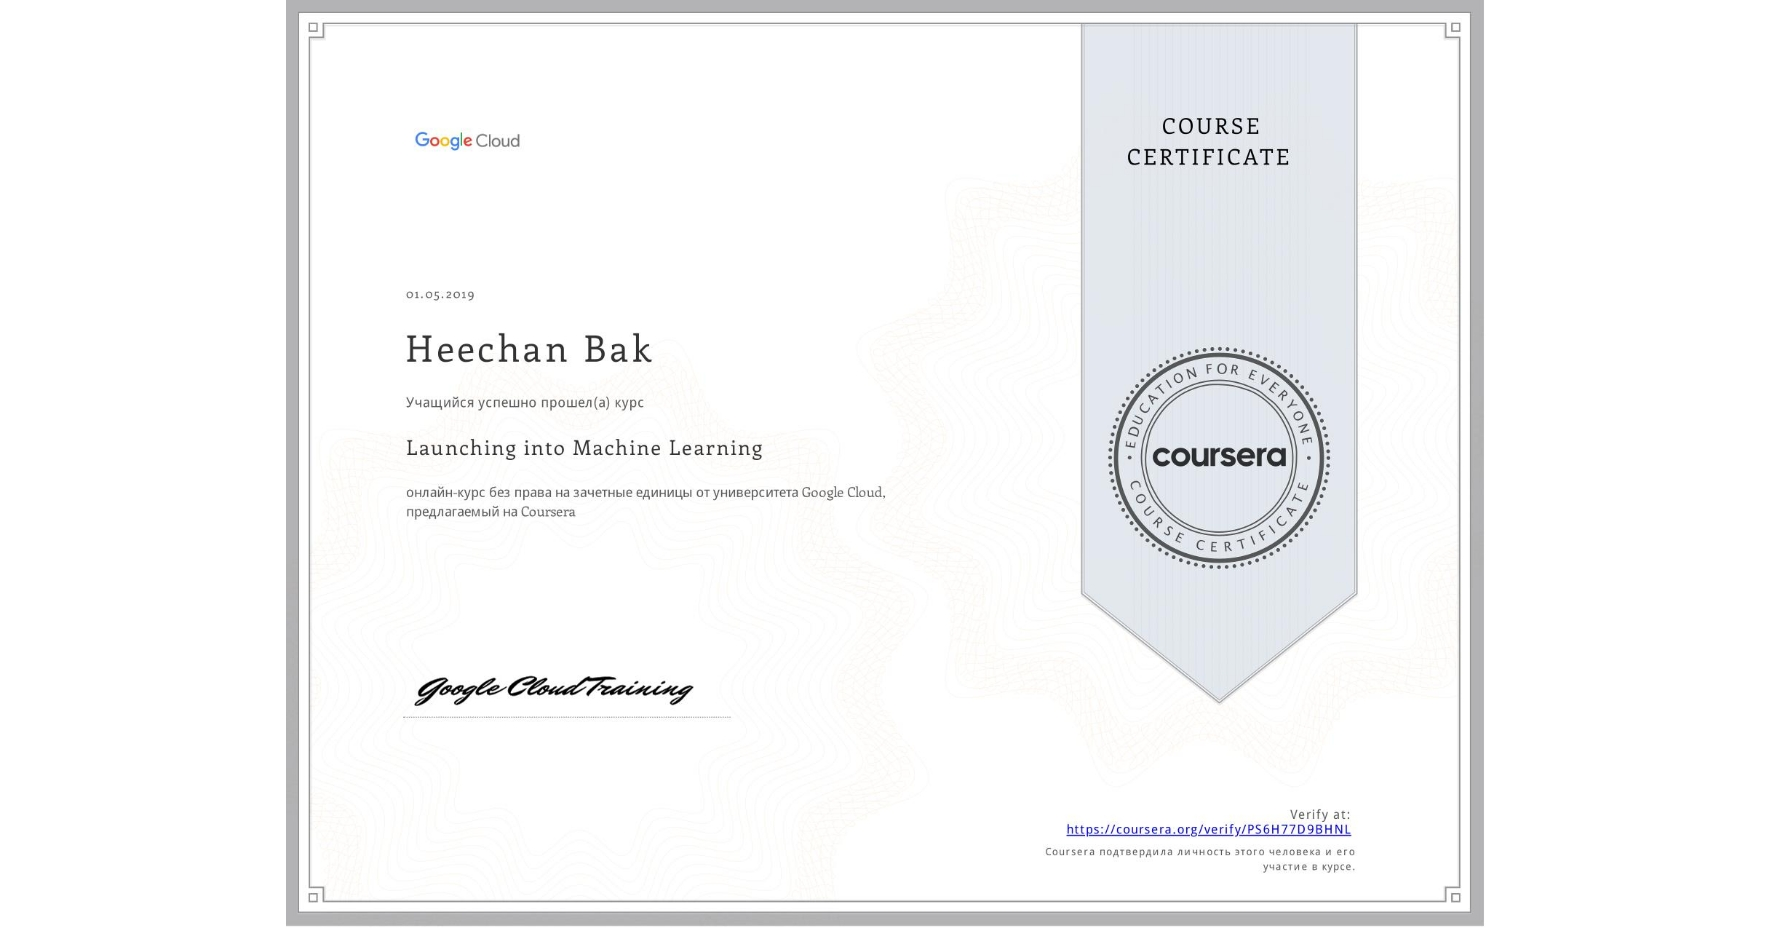 View certificate for Heechan Bak, Launching into Machine Learning, an online non-credit course authorized by Google Cloud and offered through Coursera